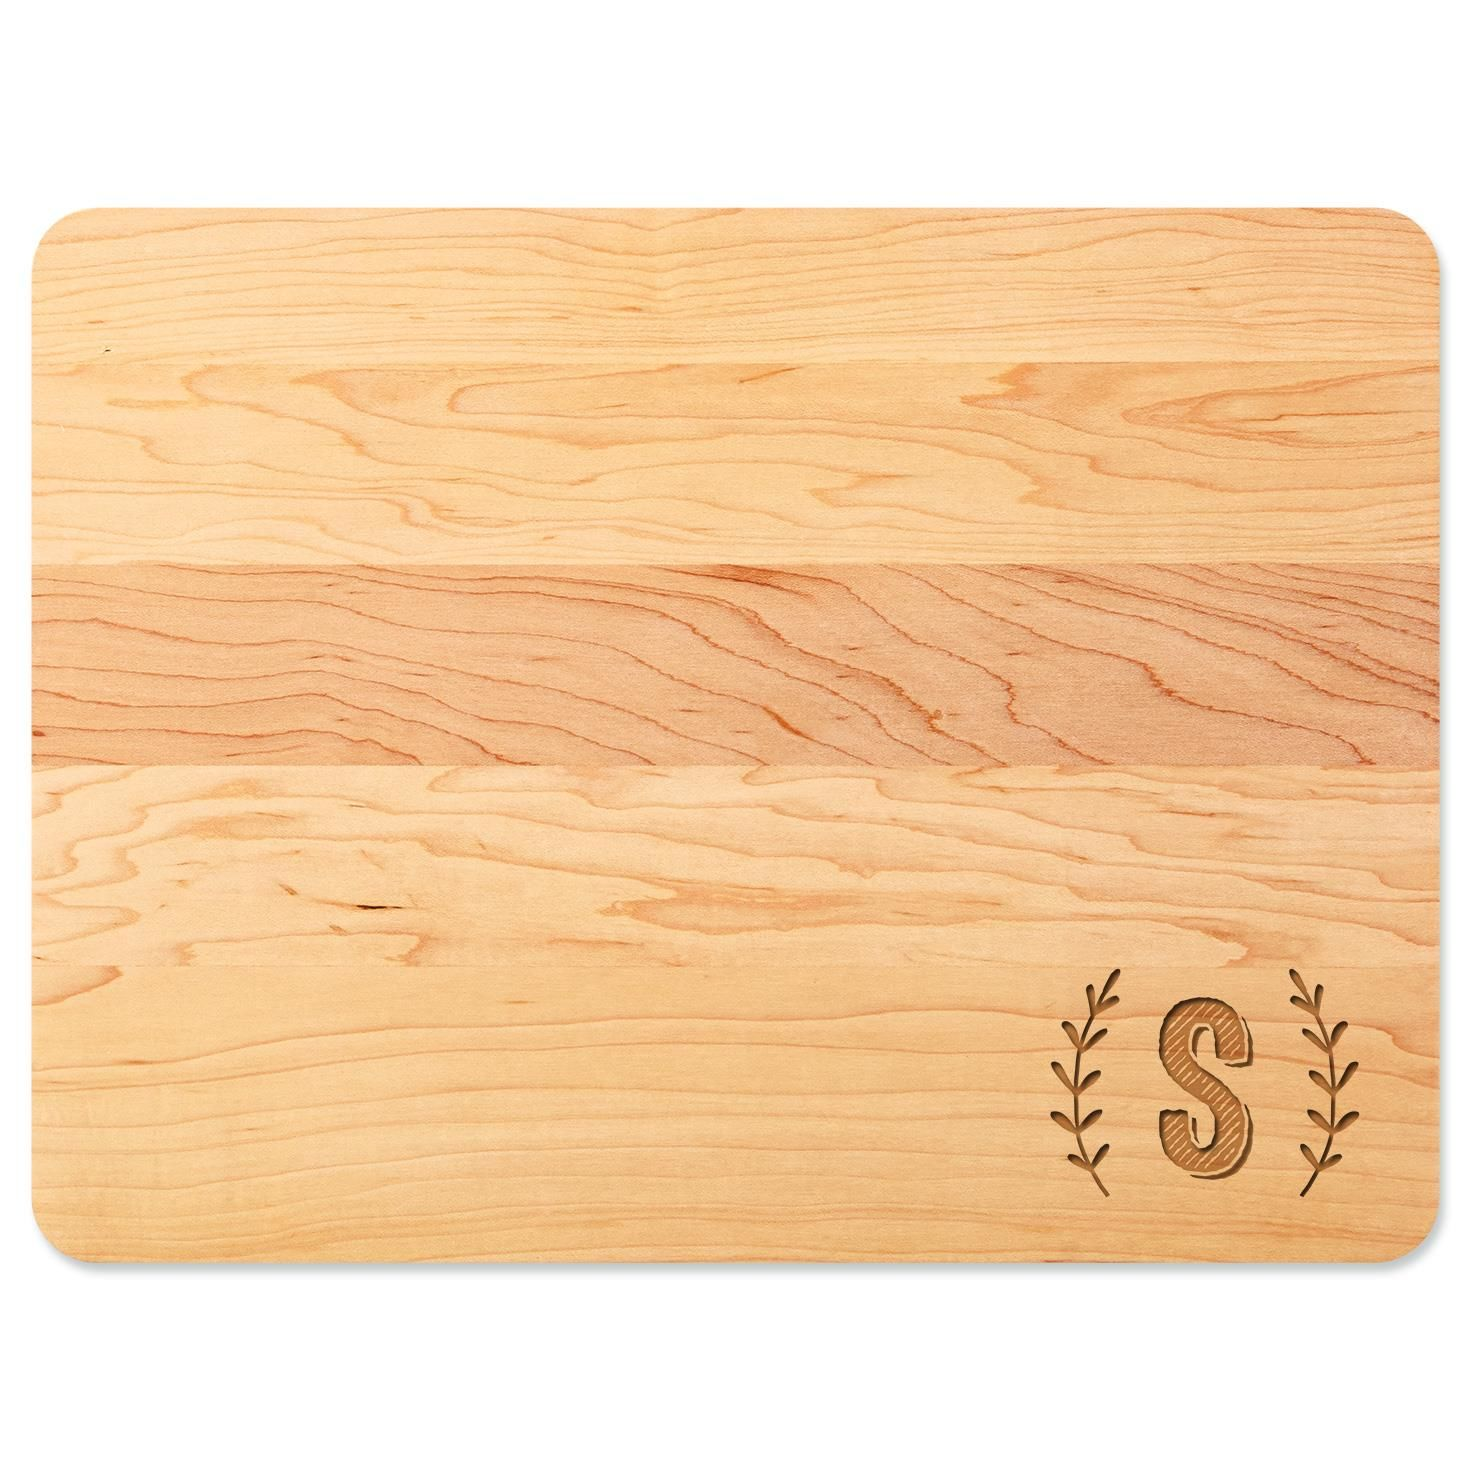 Home As Brand Personalized Wood Cutting Board